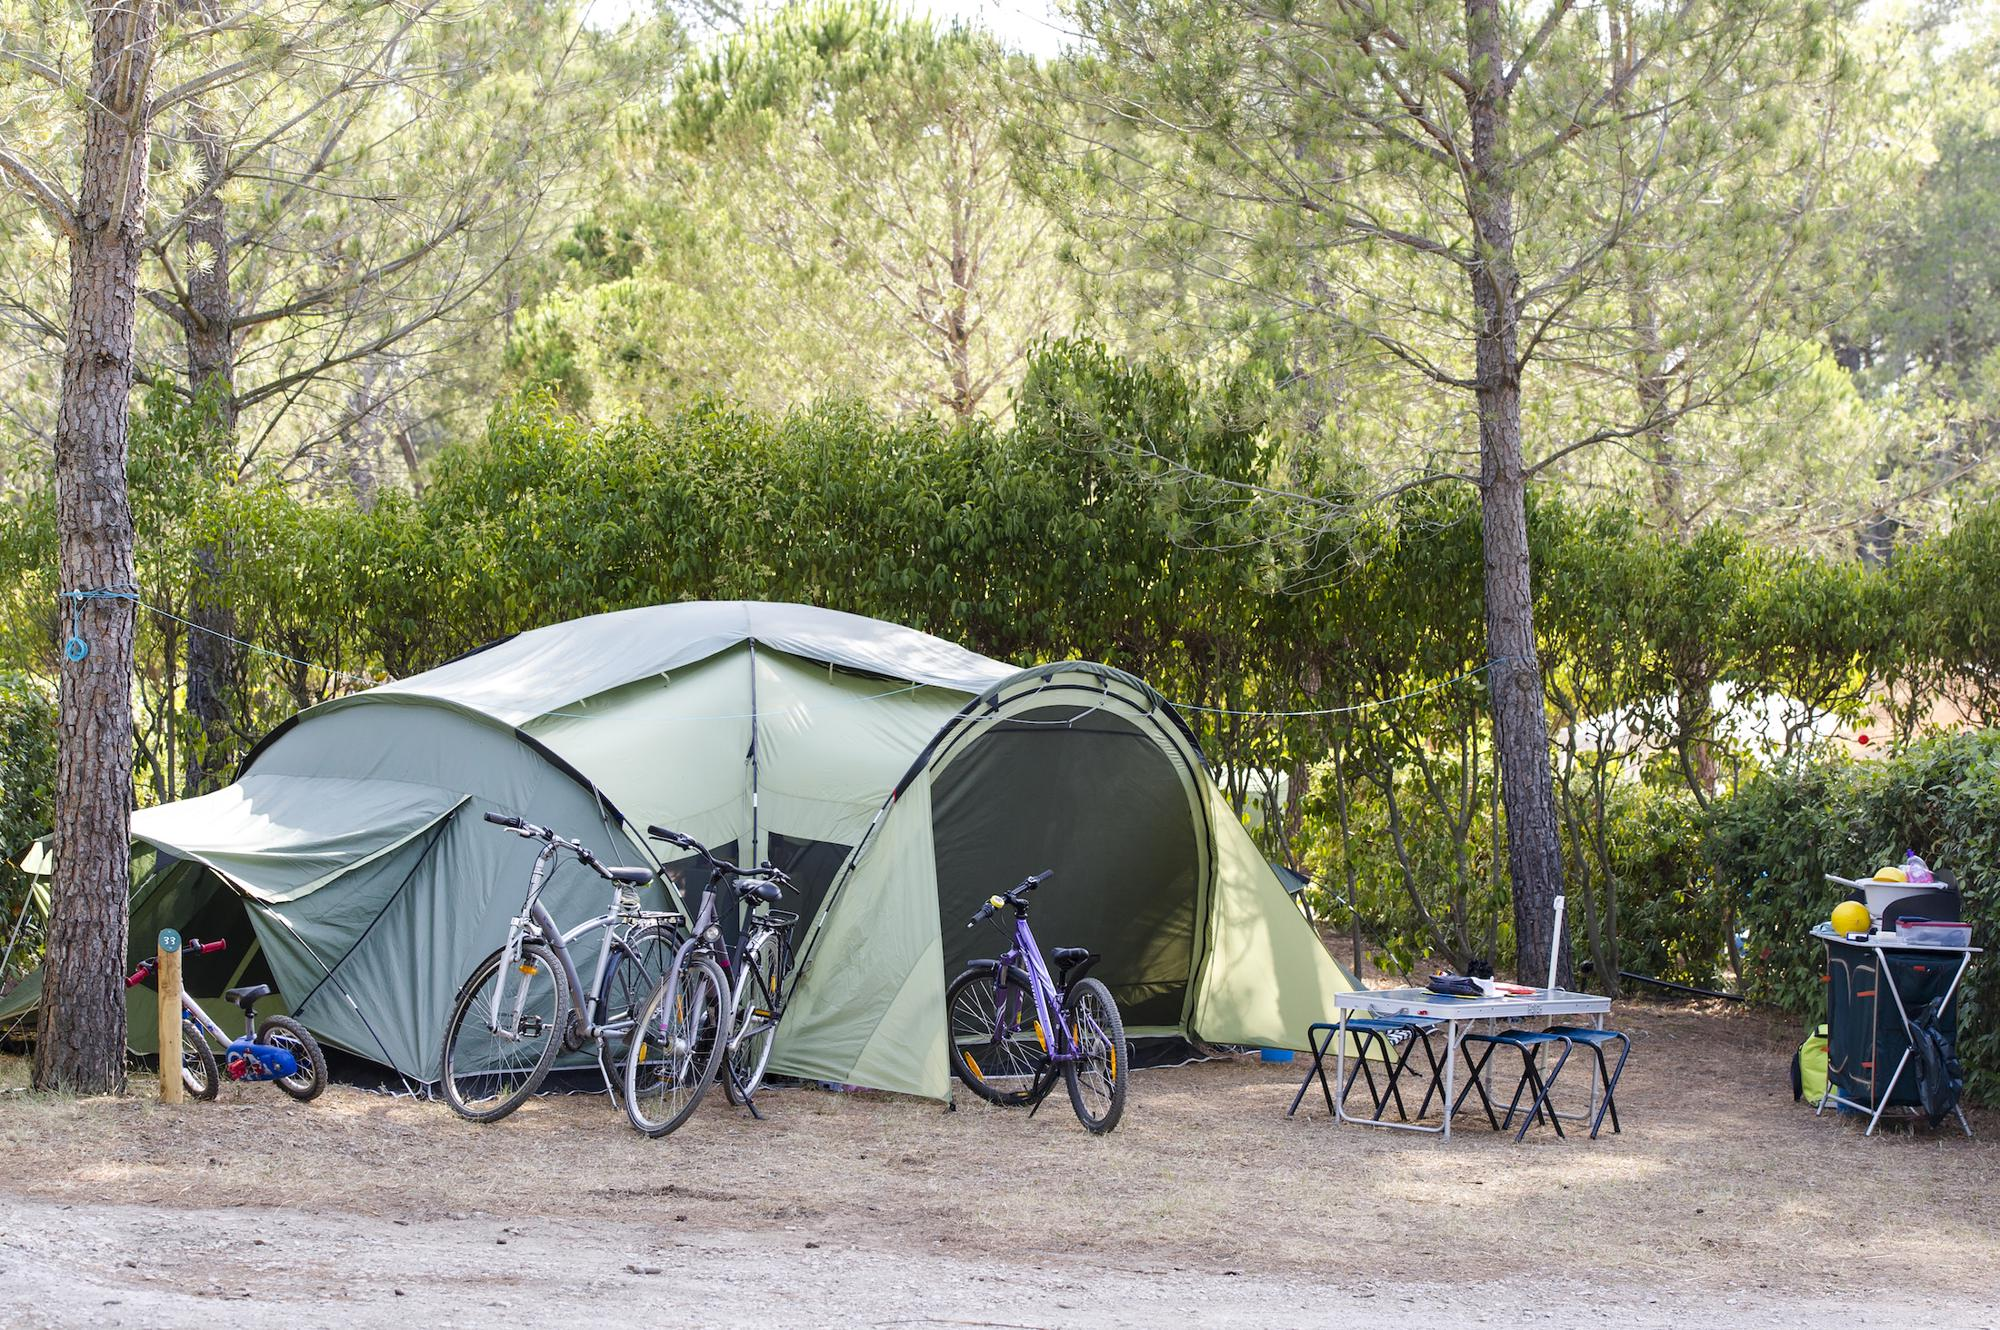 Campsites in Provence Alpes Cote D'Azur holidays at Glampingly